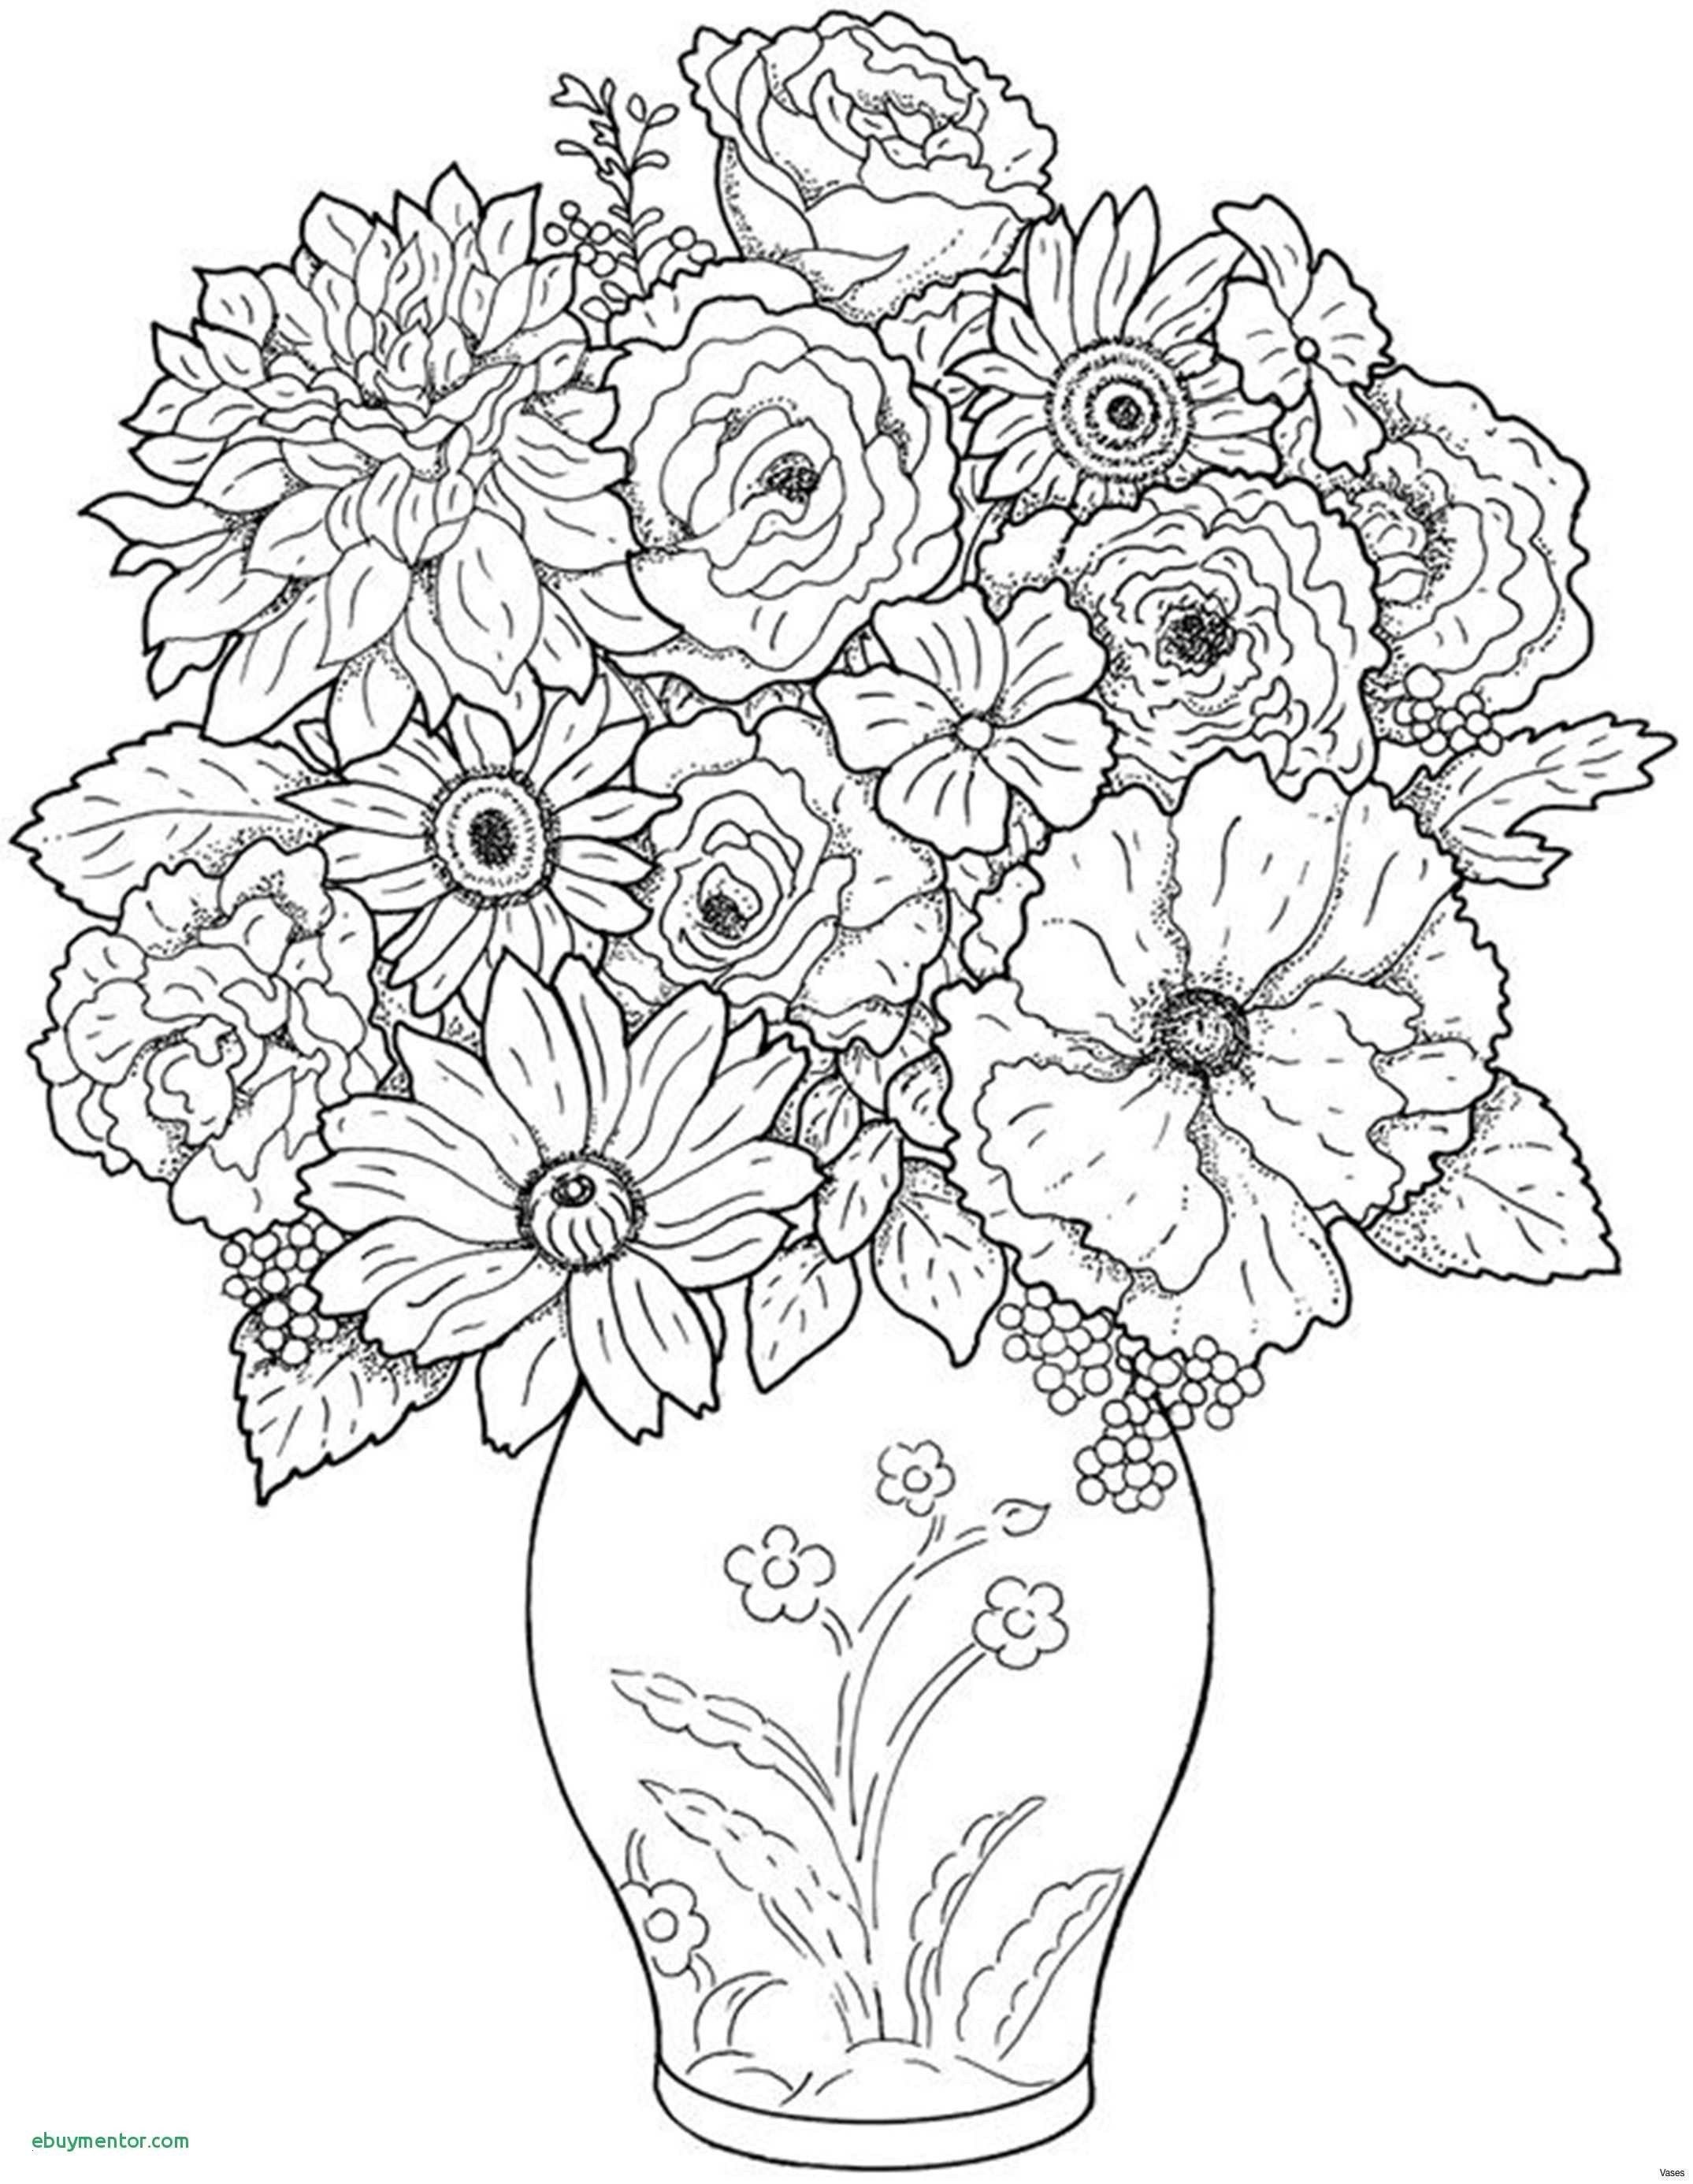 23 Ideal Single Rose In Vase 2021 free download single rose in vase of pictures of roses in a vase beautiful teen coloring best cool vases for pictures of roses in a vase beautiful teen coloring best cool vases flower vase coloring page